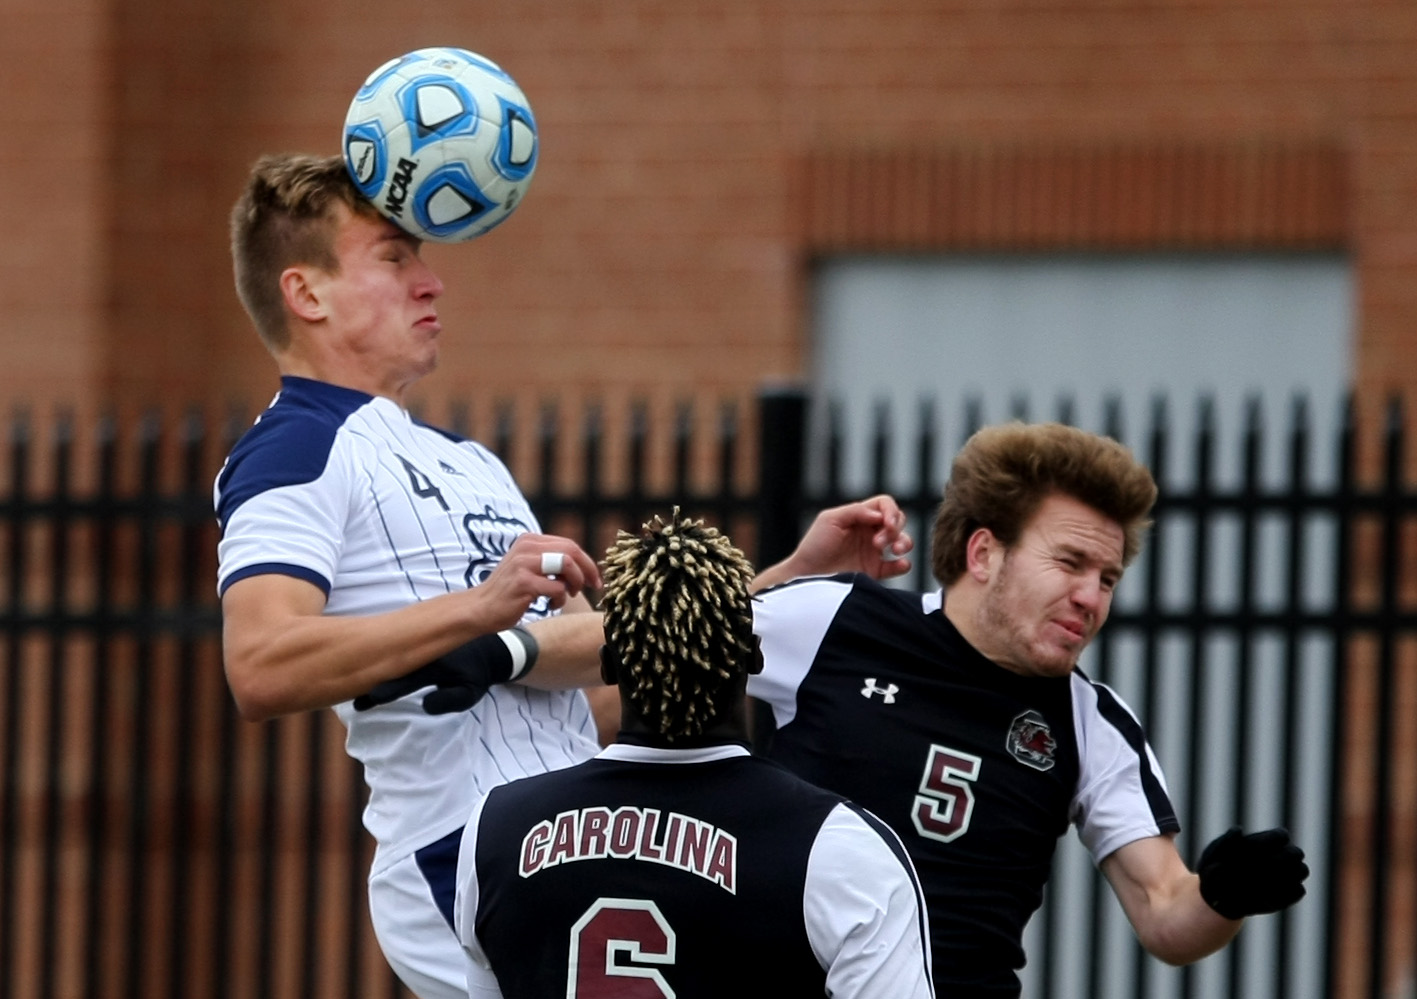 Old Dominion's David Macsicza, left, heads a ball out of the box away from University of South Carolina's Mahamoudou Kaba (cq), center, and Koty Millard during second half action of ODU's 2-1 win over USC to claim the Conference USA Men's Soccer Final, Sunday, Nov. 16, 2014 at ODU in Norfolk.  (Jason Hirschfeld | For The Virginian-Pilot)